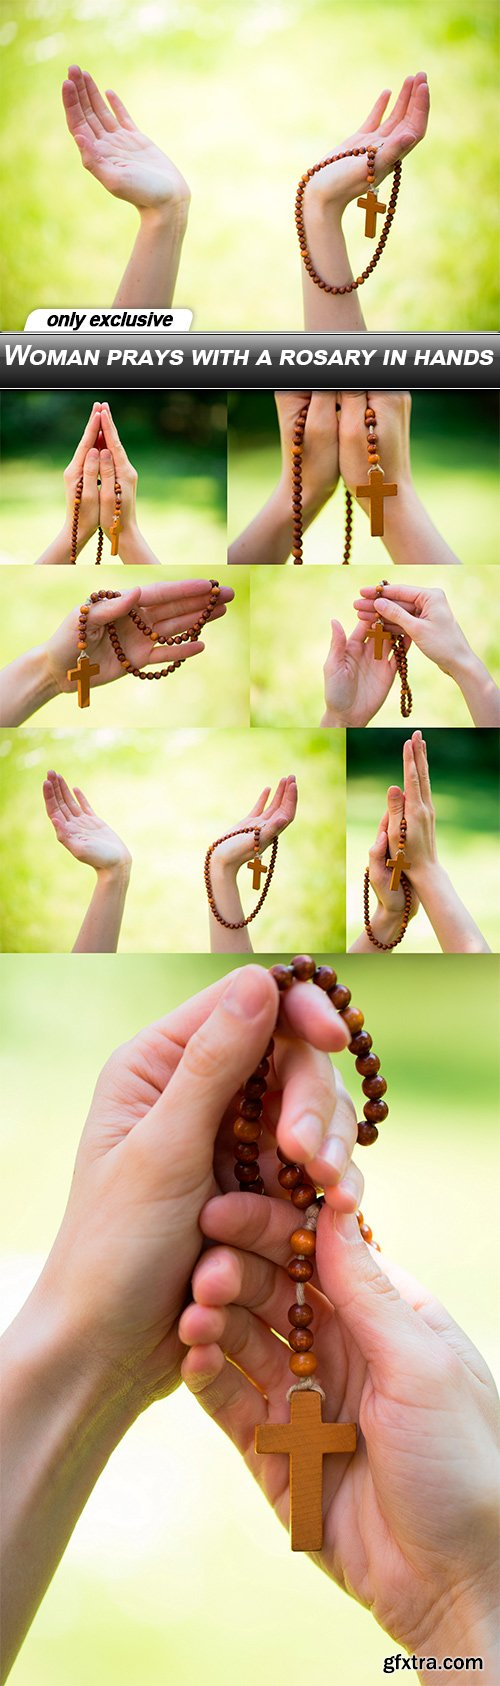 Woman prays with a rosary in hands - 7 UHQ JPEG